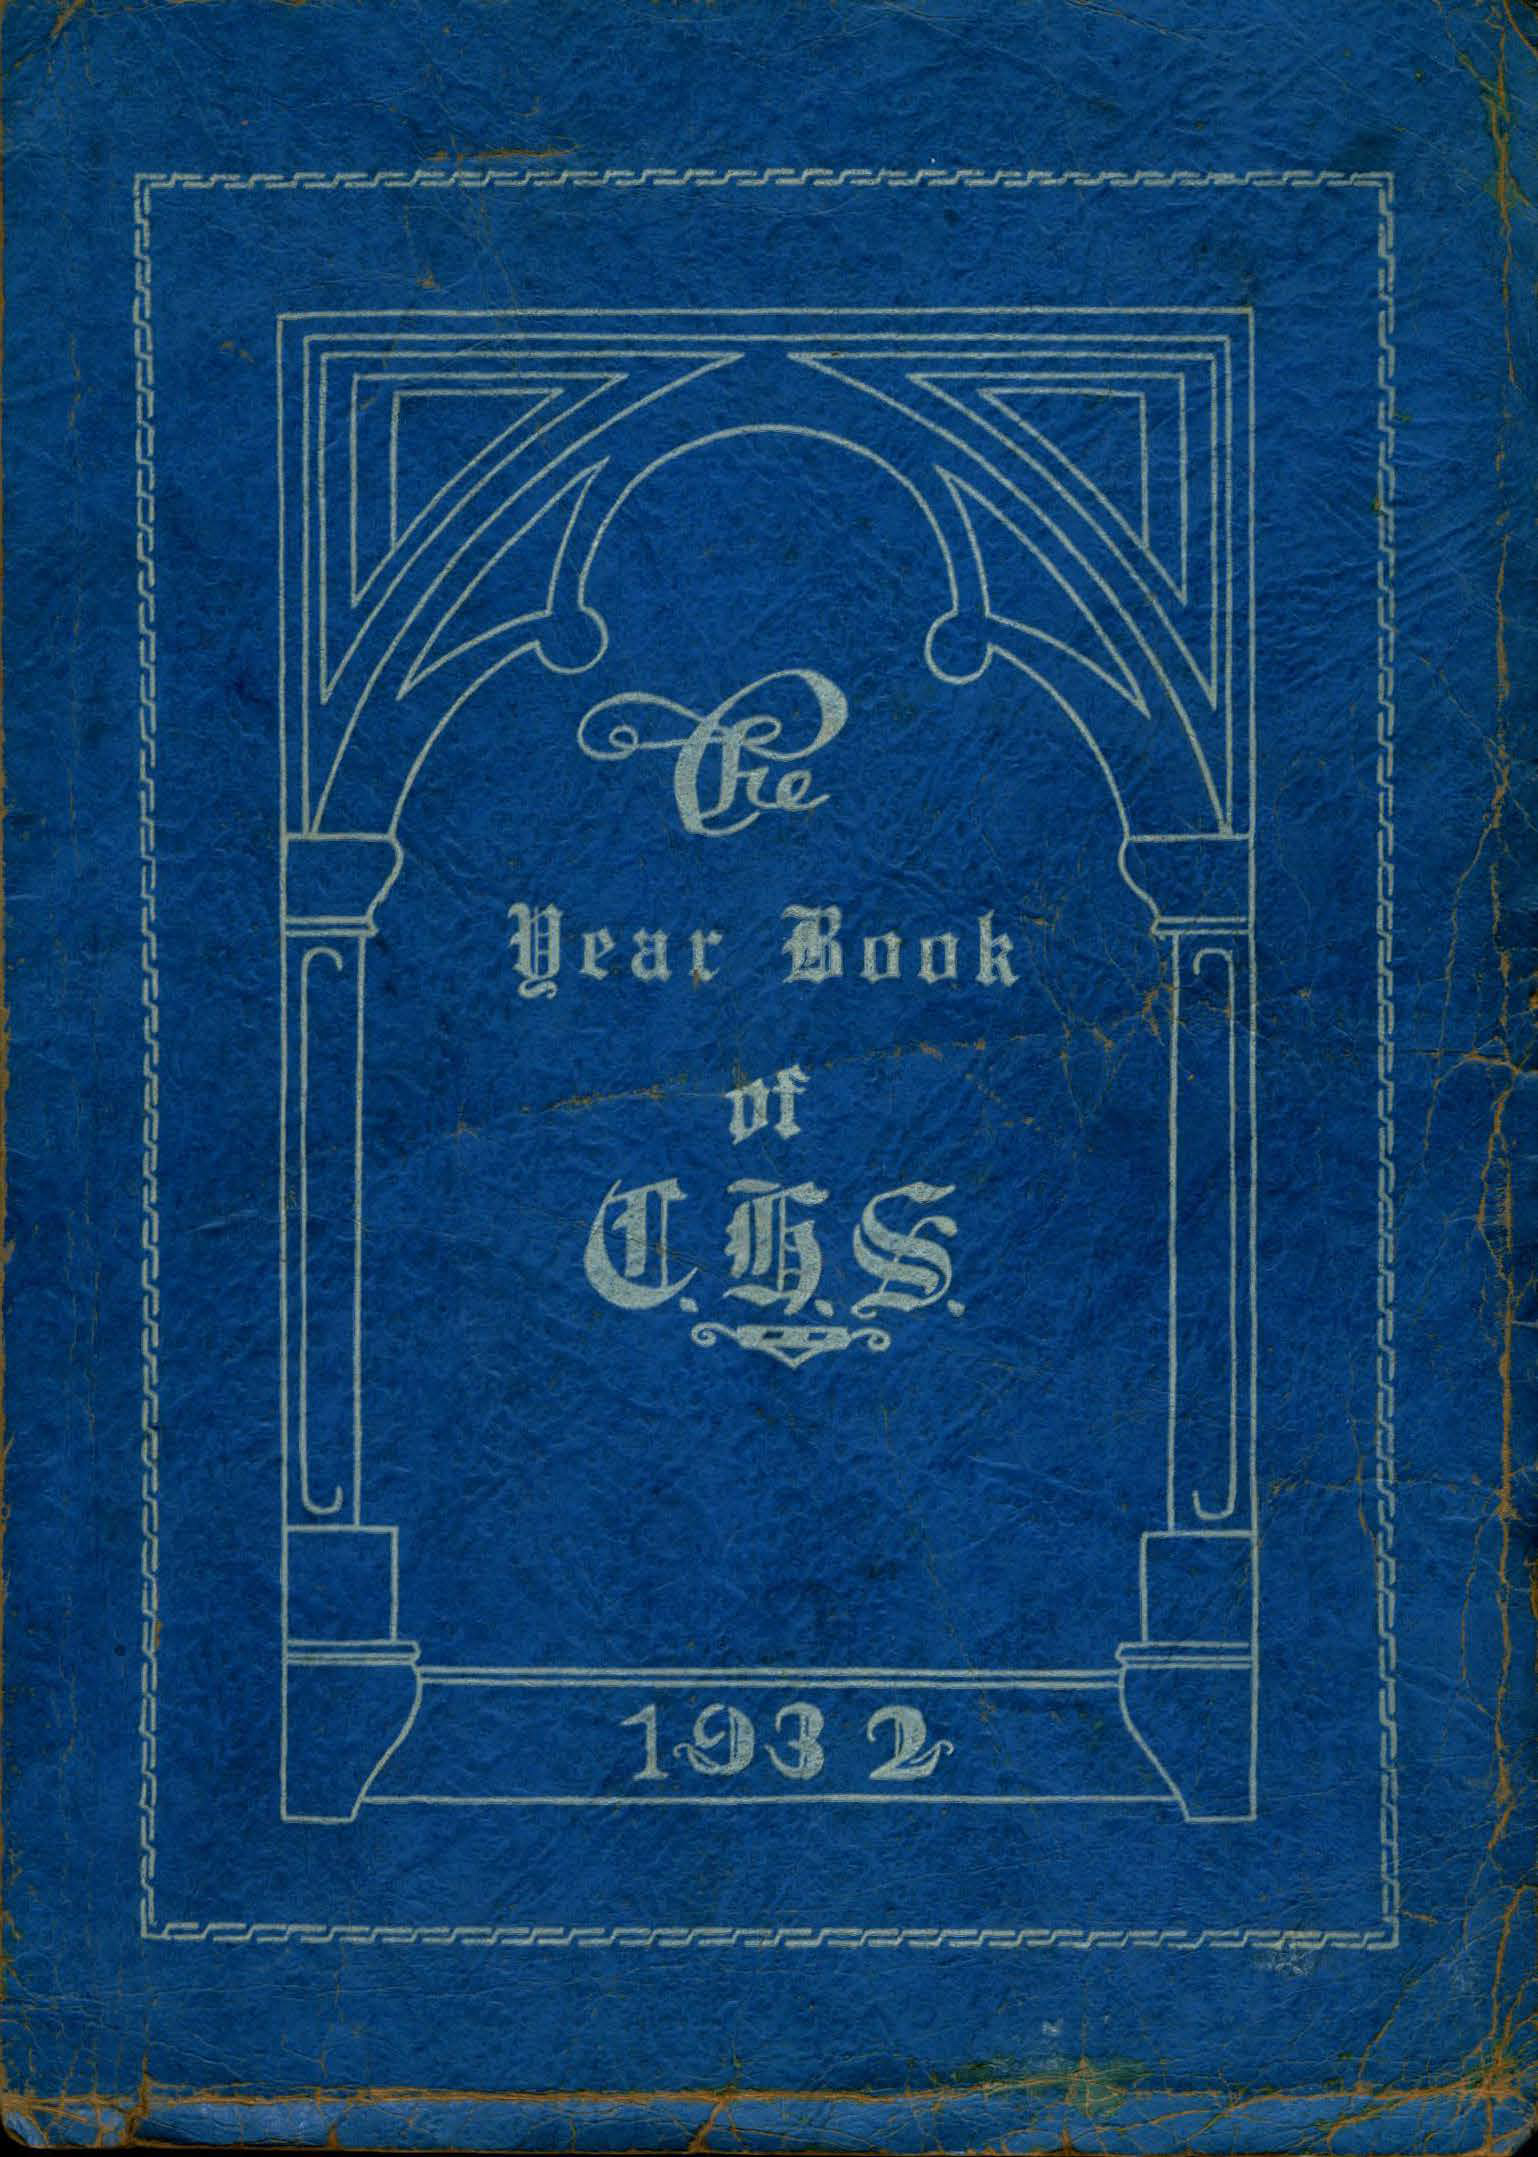 1932 Chelmsford High Yearbook 1